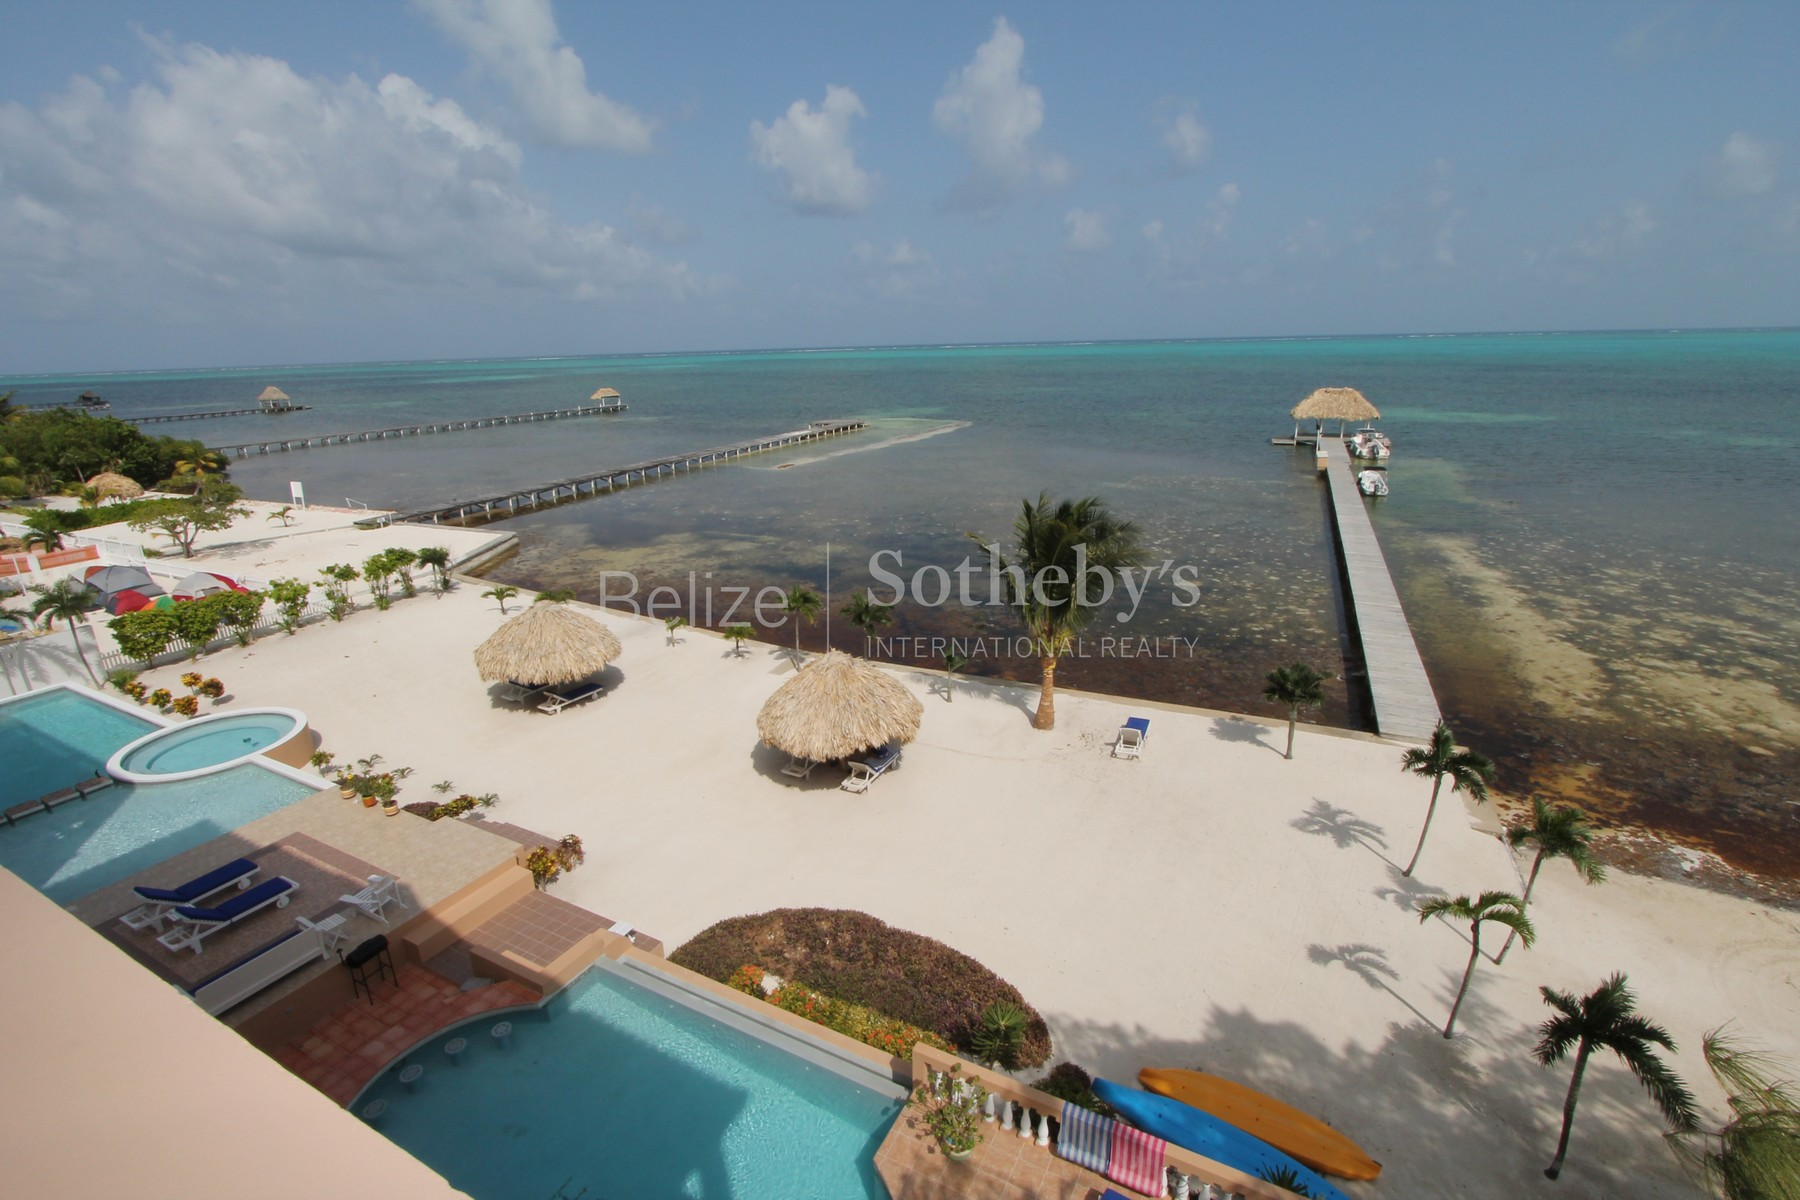 Additional photo for property listing at 4th Floor Luxury Penthouse Located at Hol Chan Reef Resort!!! 圣佩德罗城, 安伯格里斯岛 伯利兹